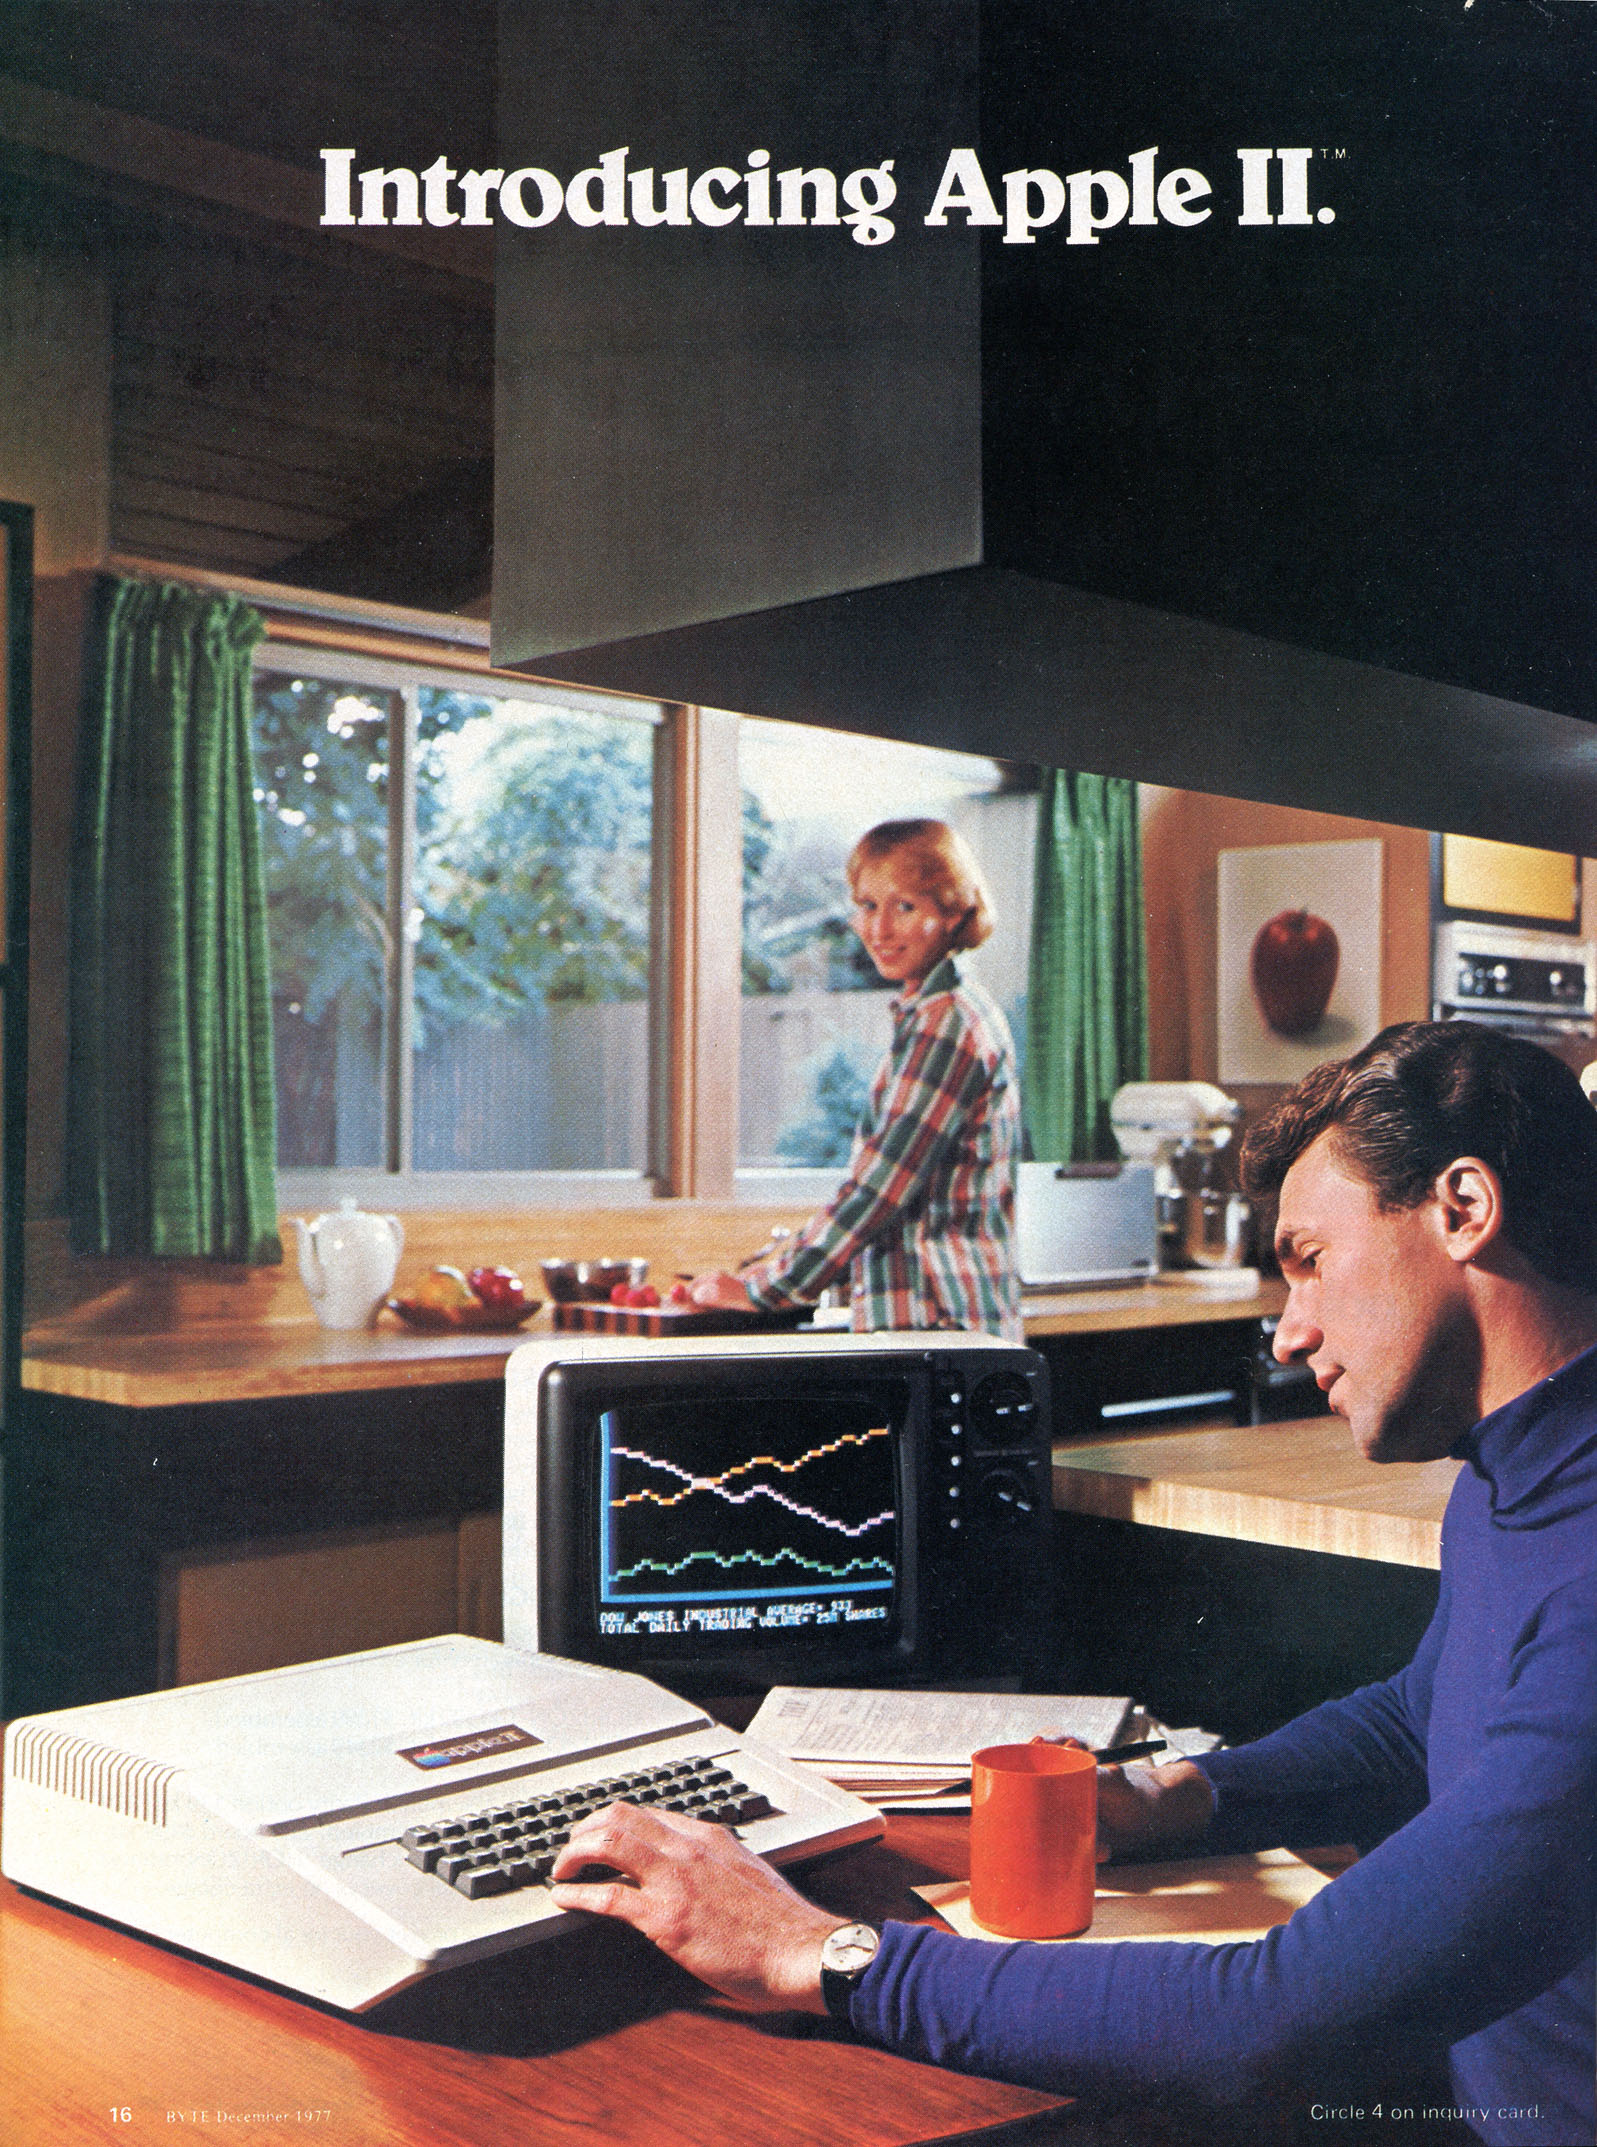 An Apple II advertisement from the December 1977 issue of Byte m